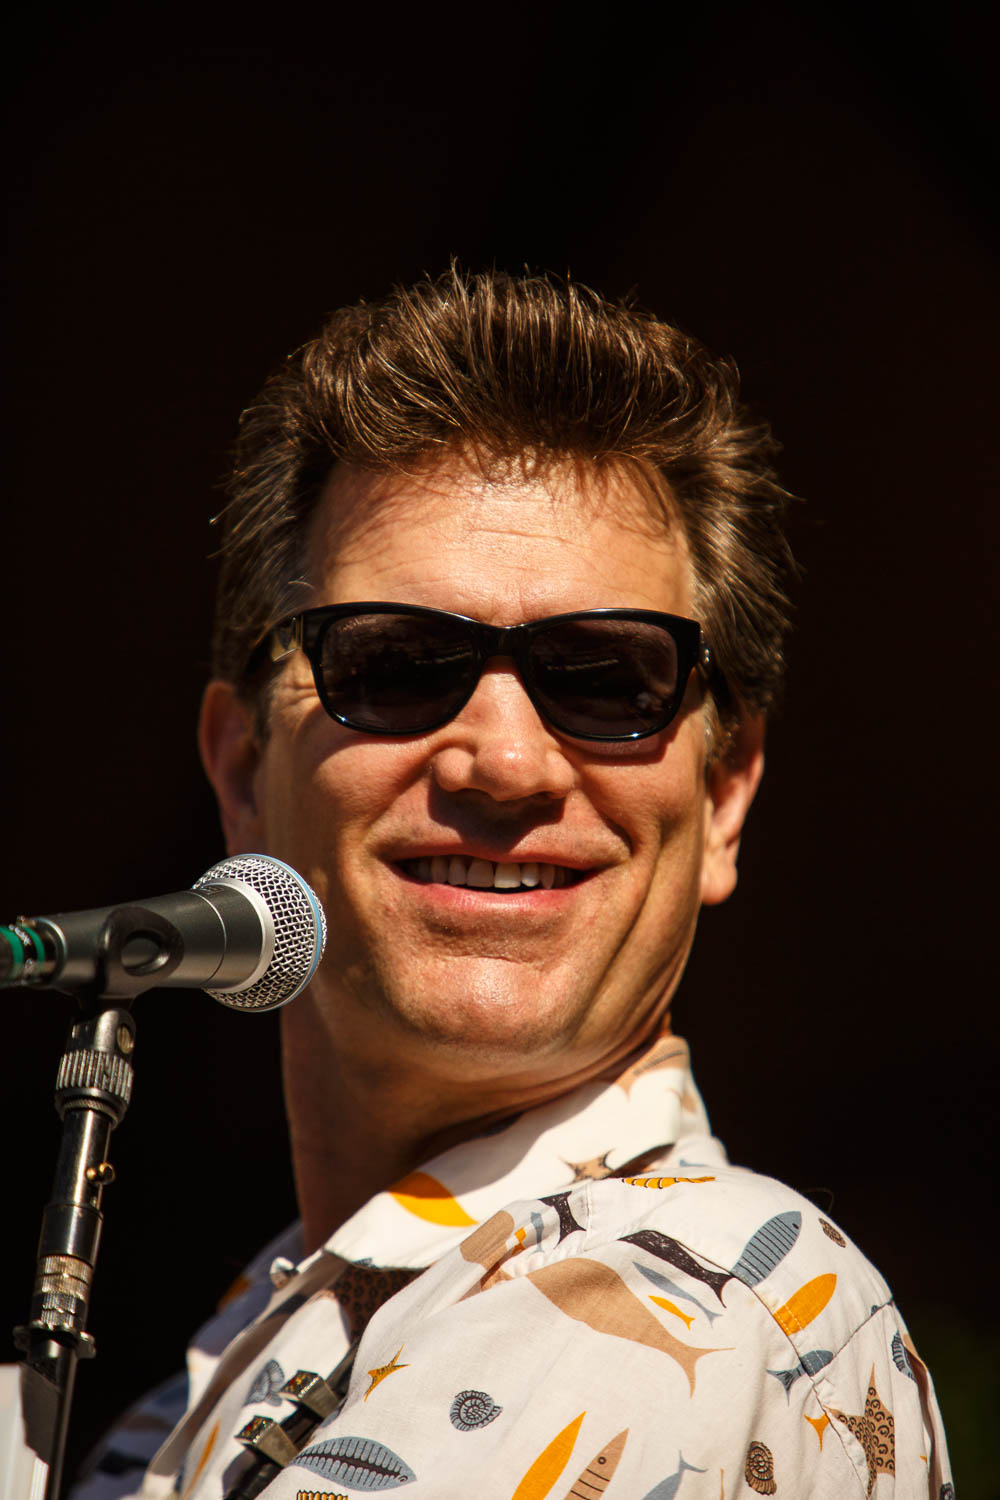 Rodney Strong Concerts 2014 2 Chris Isaak-3029.jpg